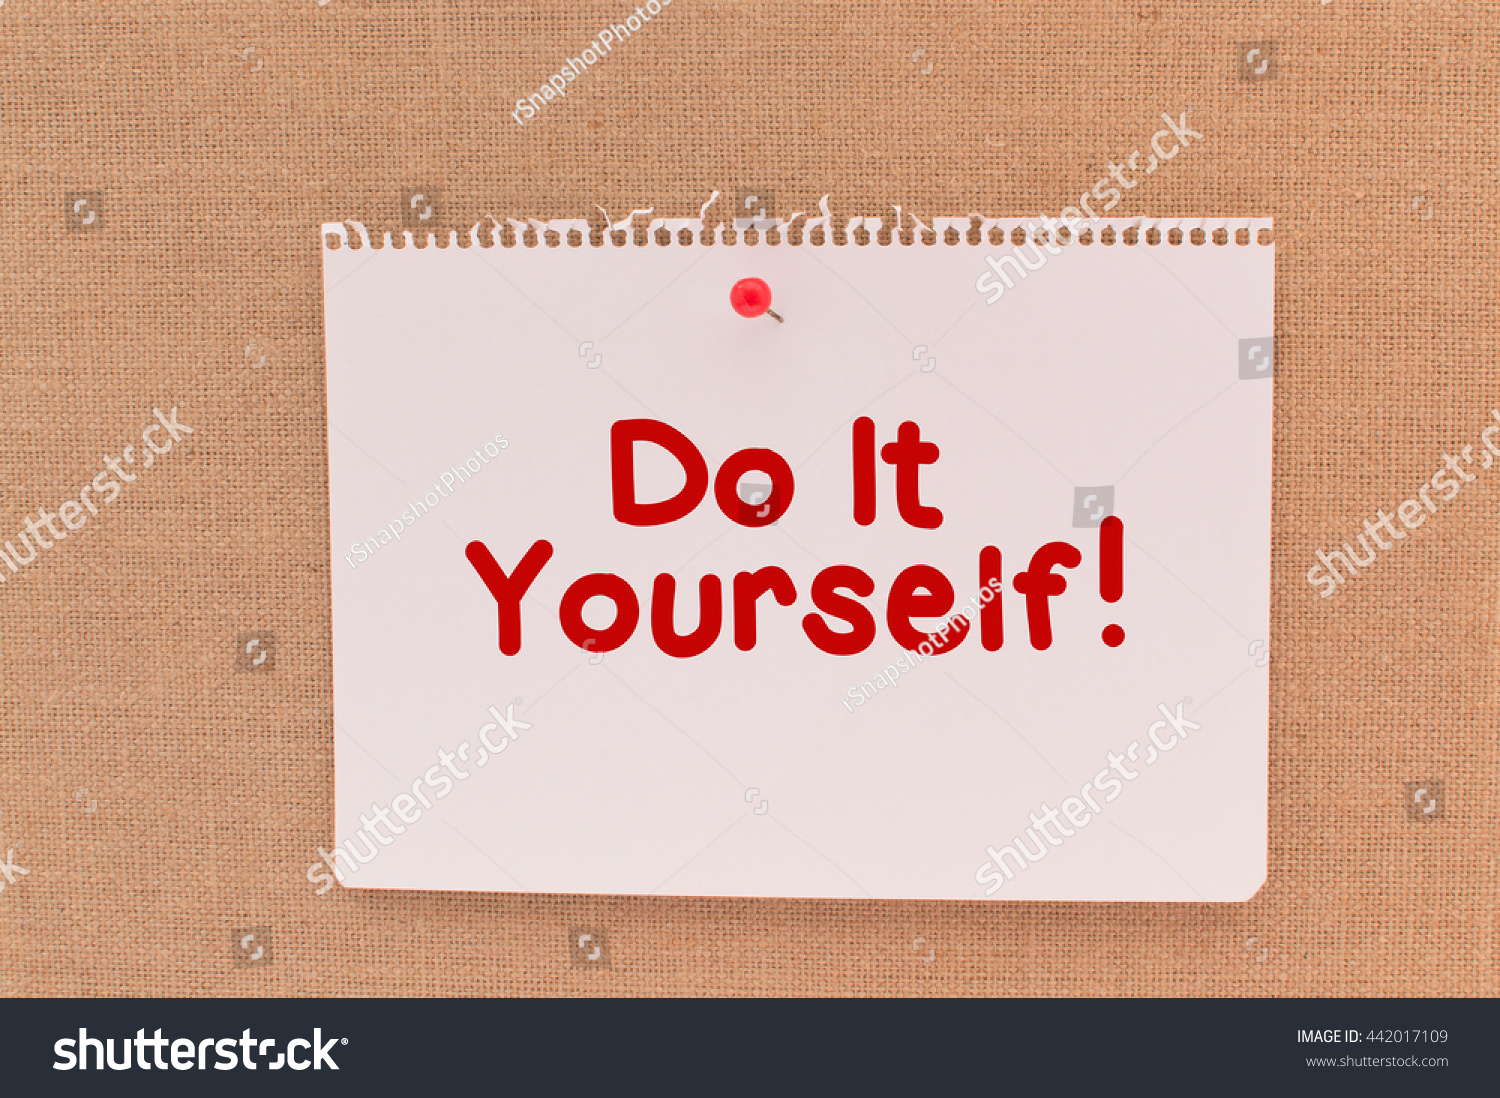 Do yourself notebook paper hanging on canvas stock photo royalty do it yourselfnotebook paper hanging on canvas board red thumb tack solutioingenieria Images